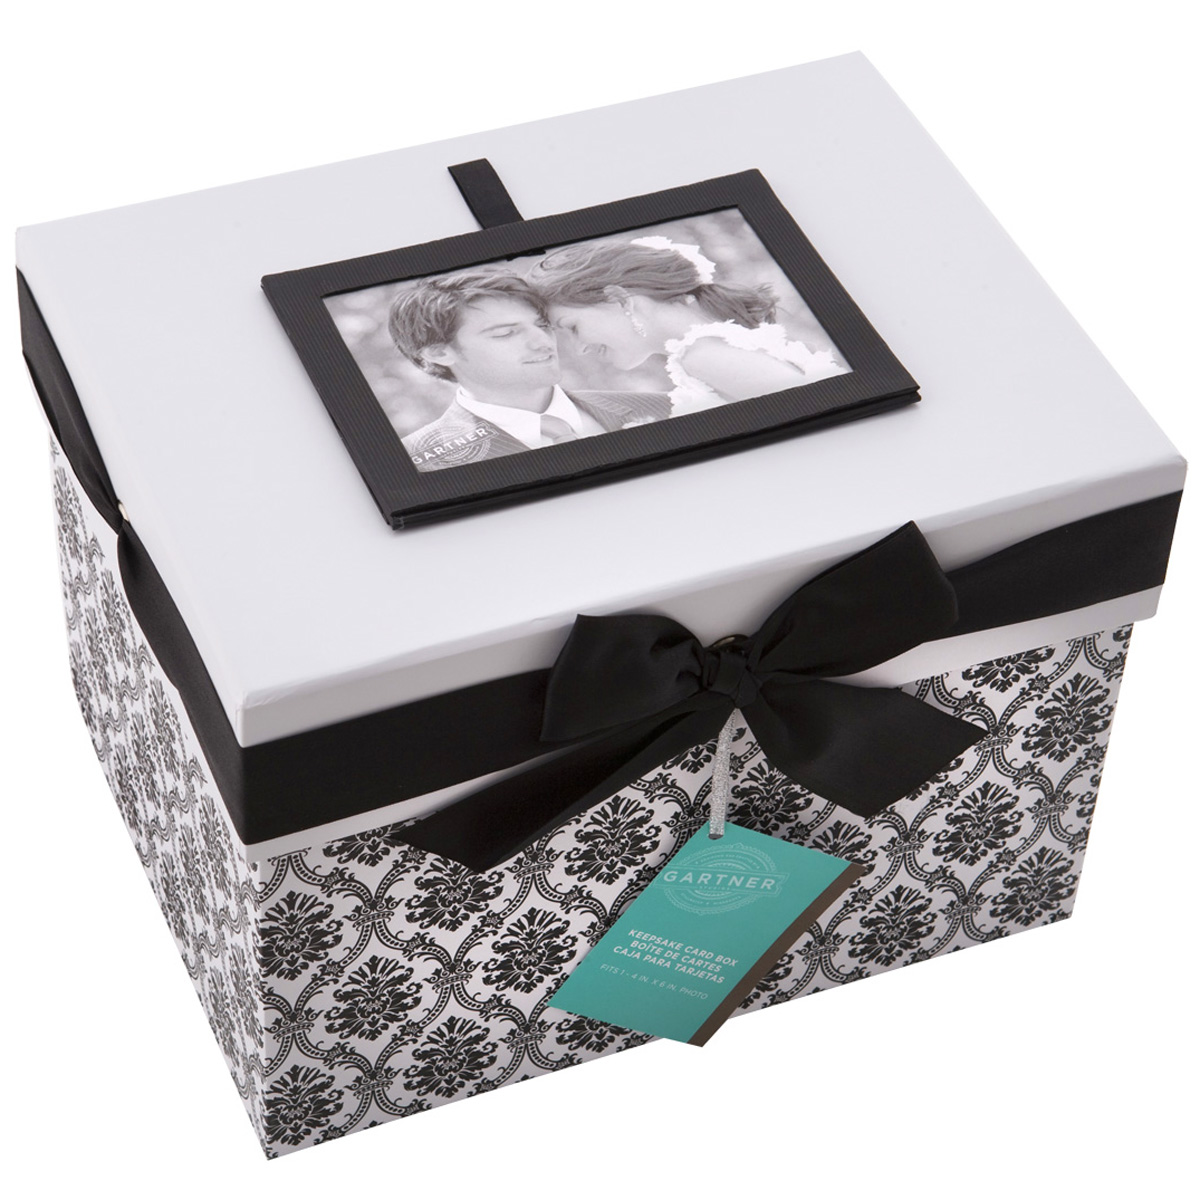 Gartner Studios Black White Keepsake Card Box – Wedding Card Keepsake Box